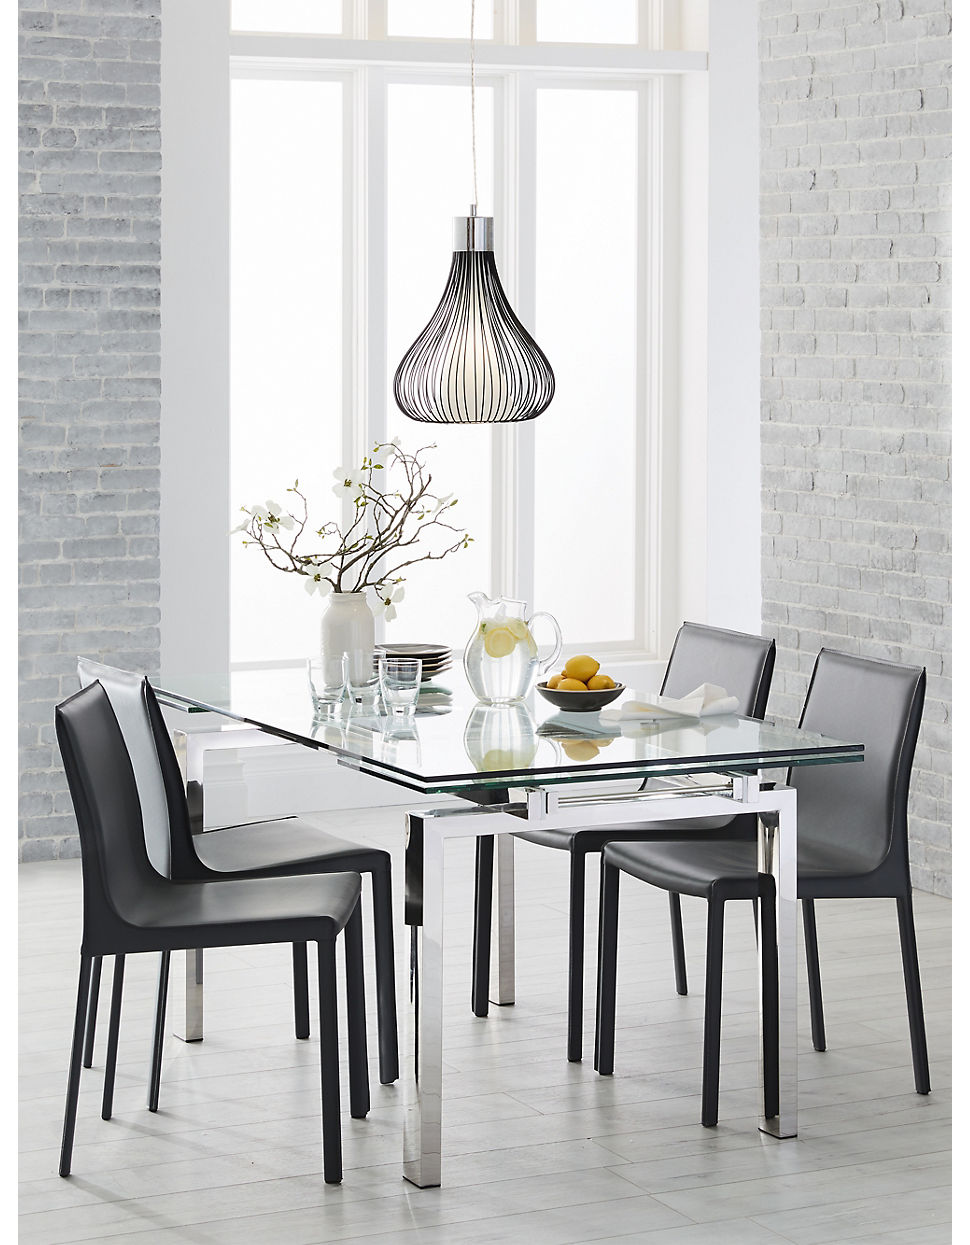 Cantro Dining Table With Extension Leaf